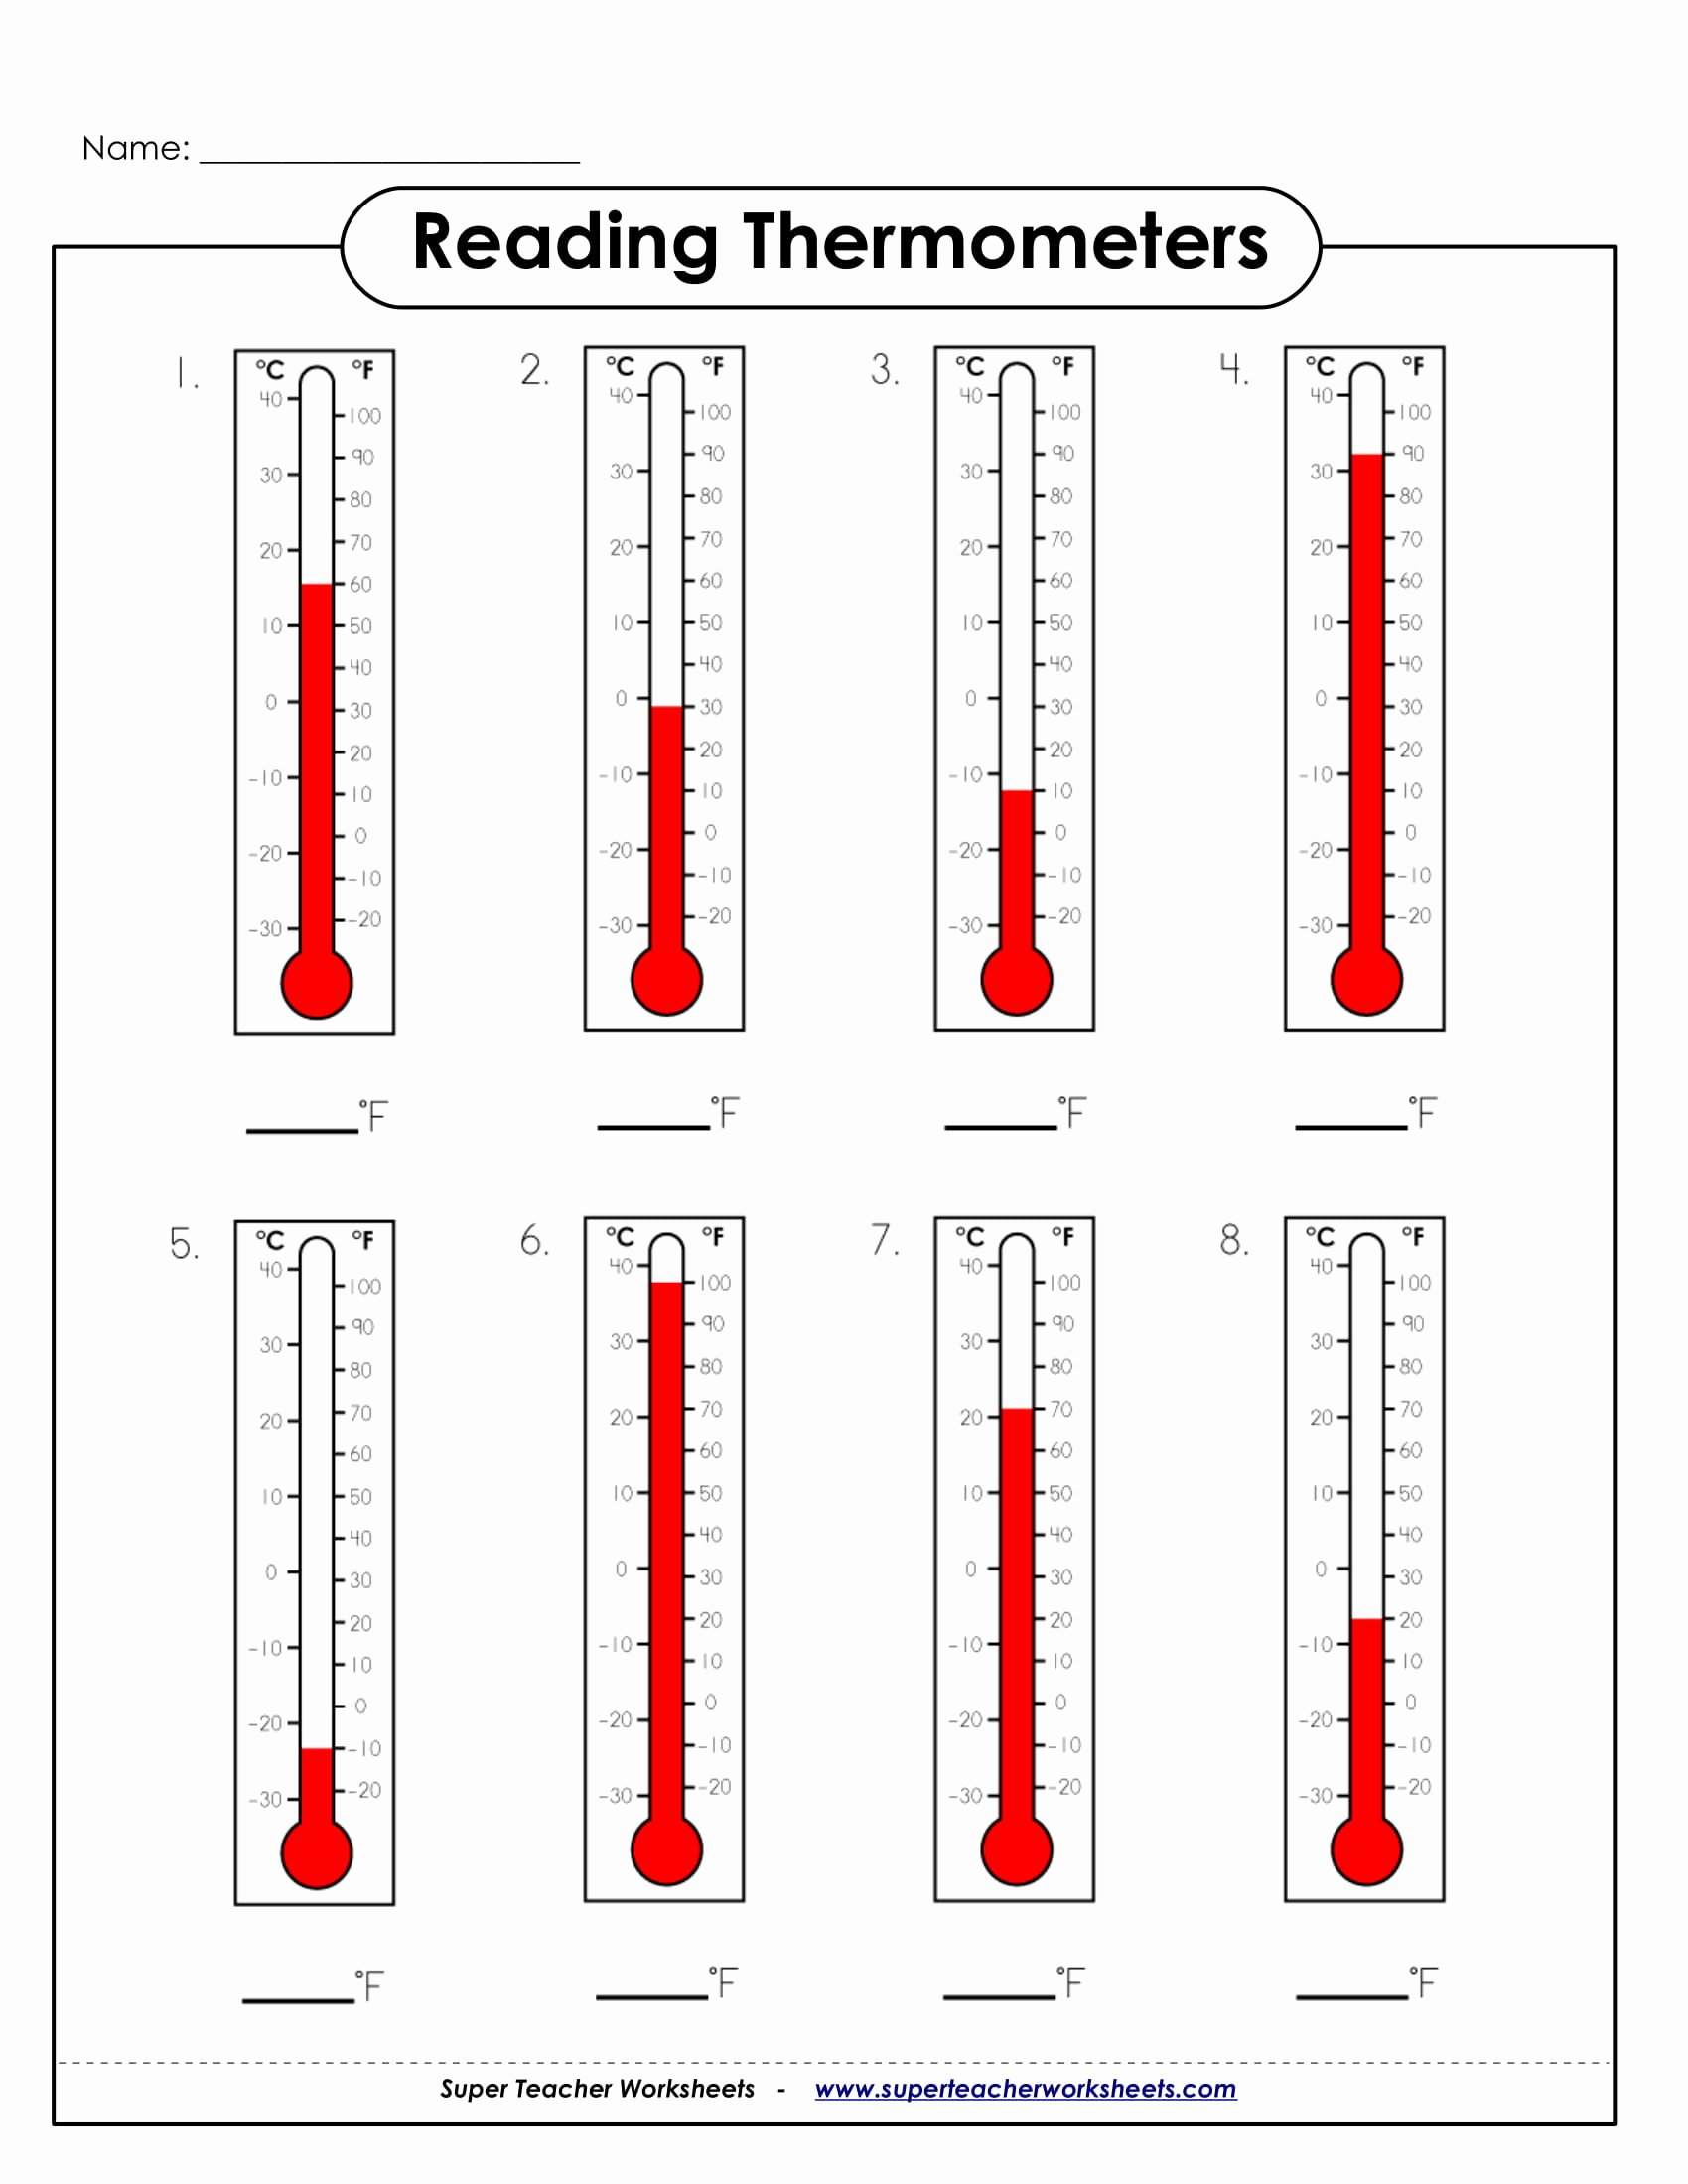 Reading A thermometer Worksheet Elegant 9 Math Worksheets for Students Pdf